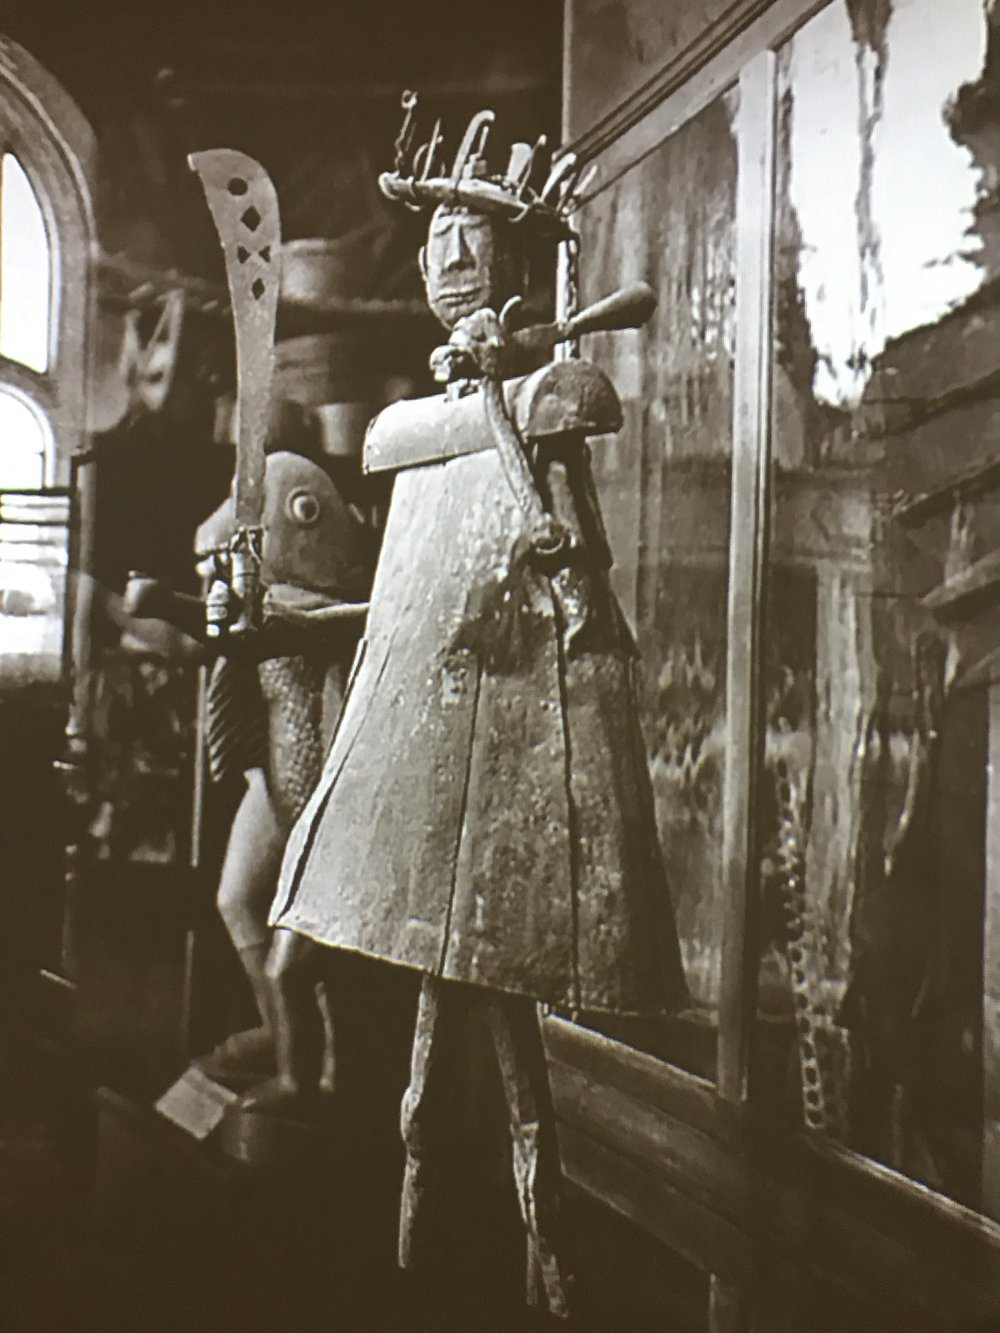 A still from a video filmed at Trocadero Museum around the time when Picasso visited the first time in 1907.  This same sculpture by African artist Akati Ekplekendo is physically present at Picasso Primitif.